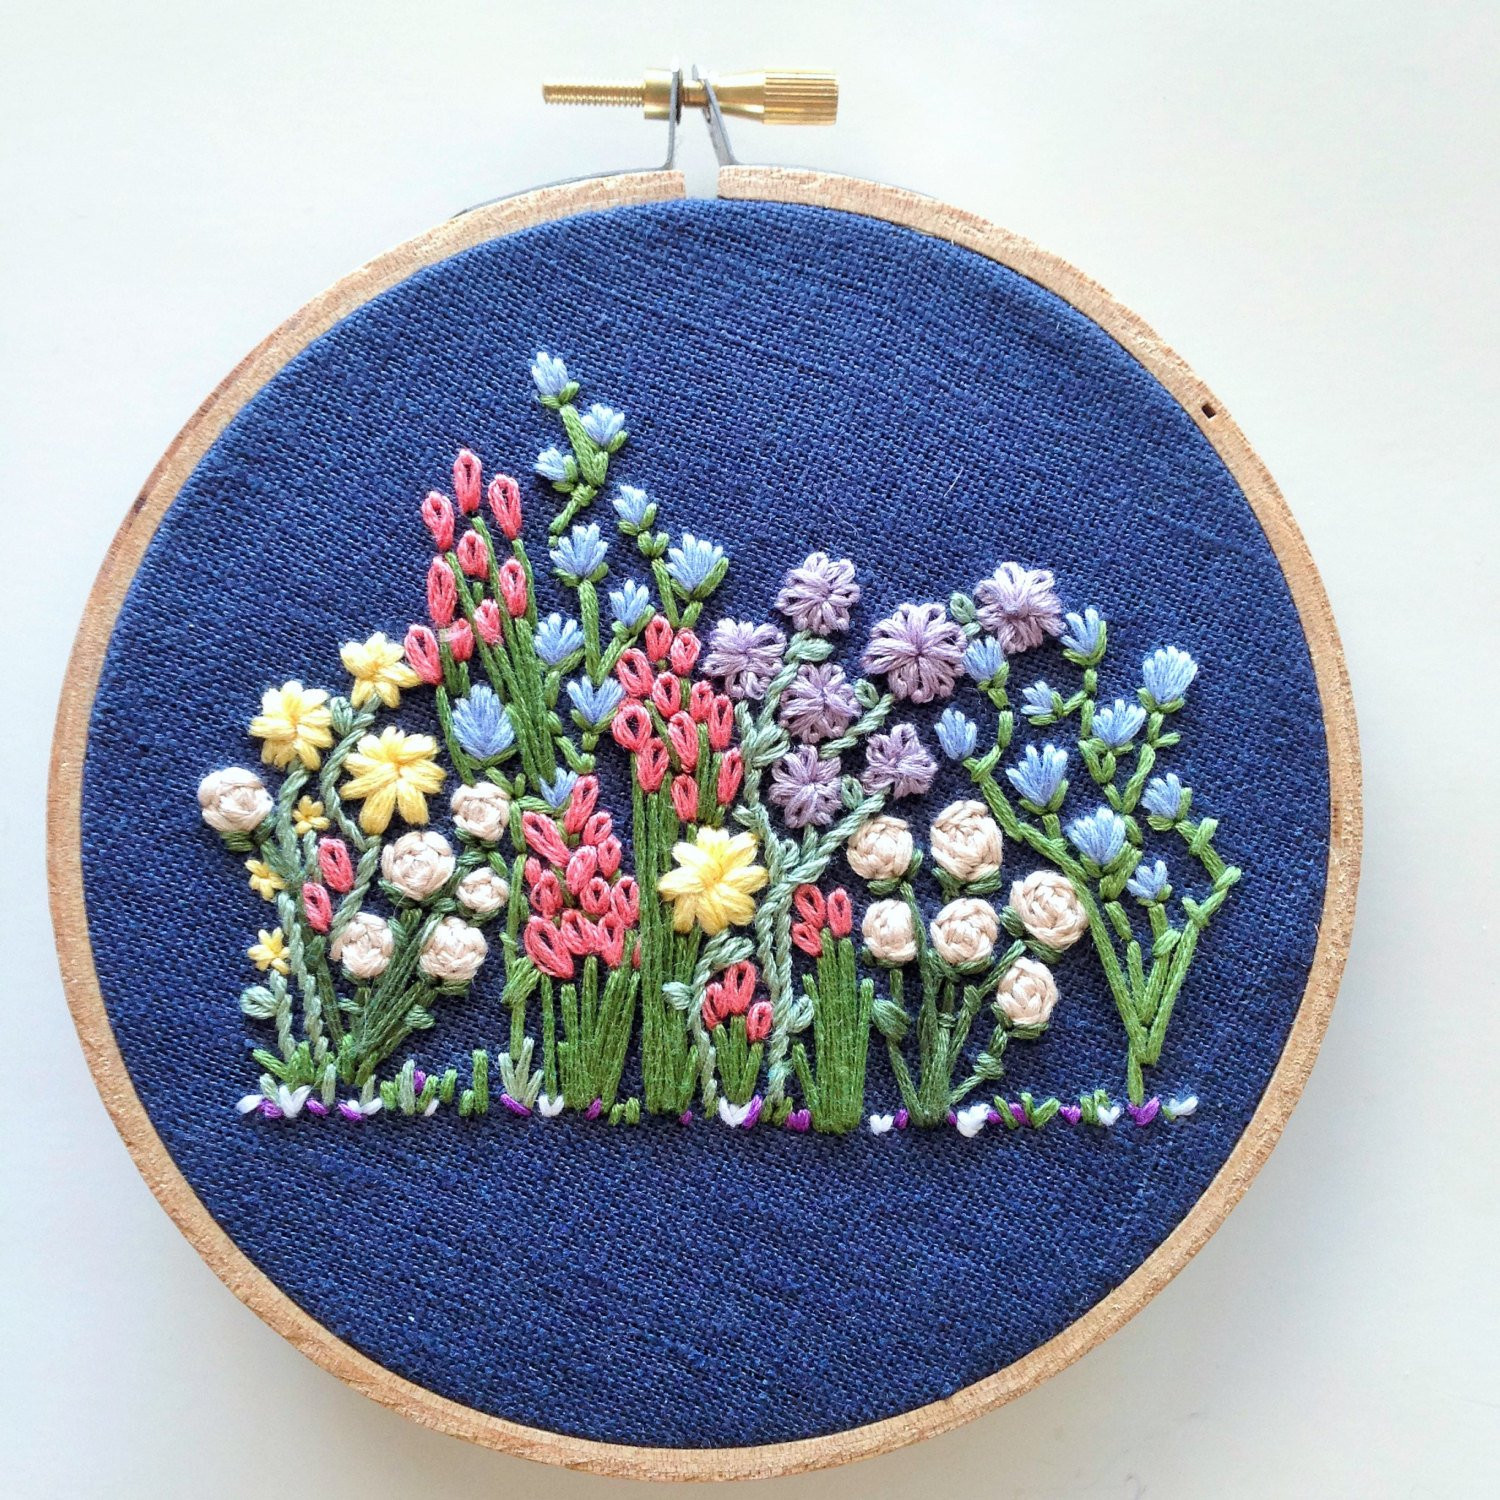 Hand Embroidery Patterns Best Of Hand Embroidery Pattern Flower Embroidery Hoop Pattern Of Adorable 44 Pictures Hand Embroidery Patterns